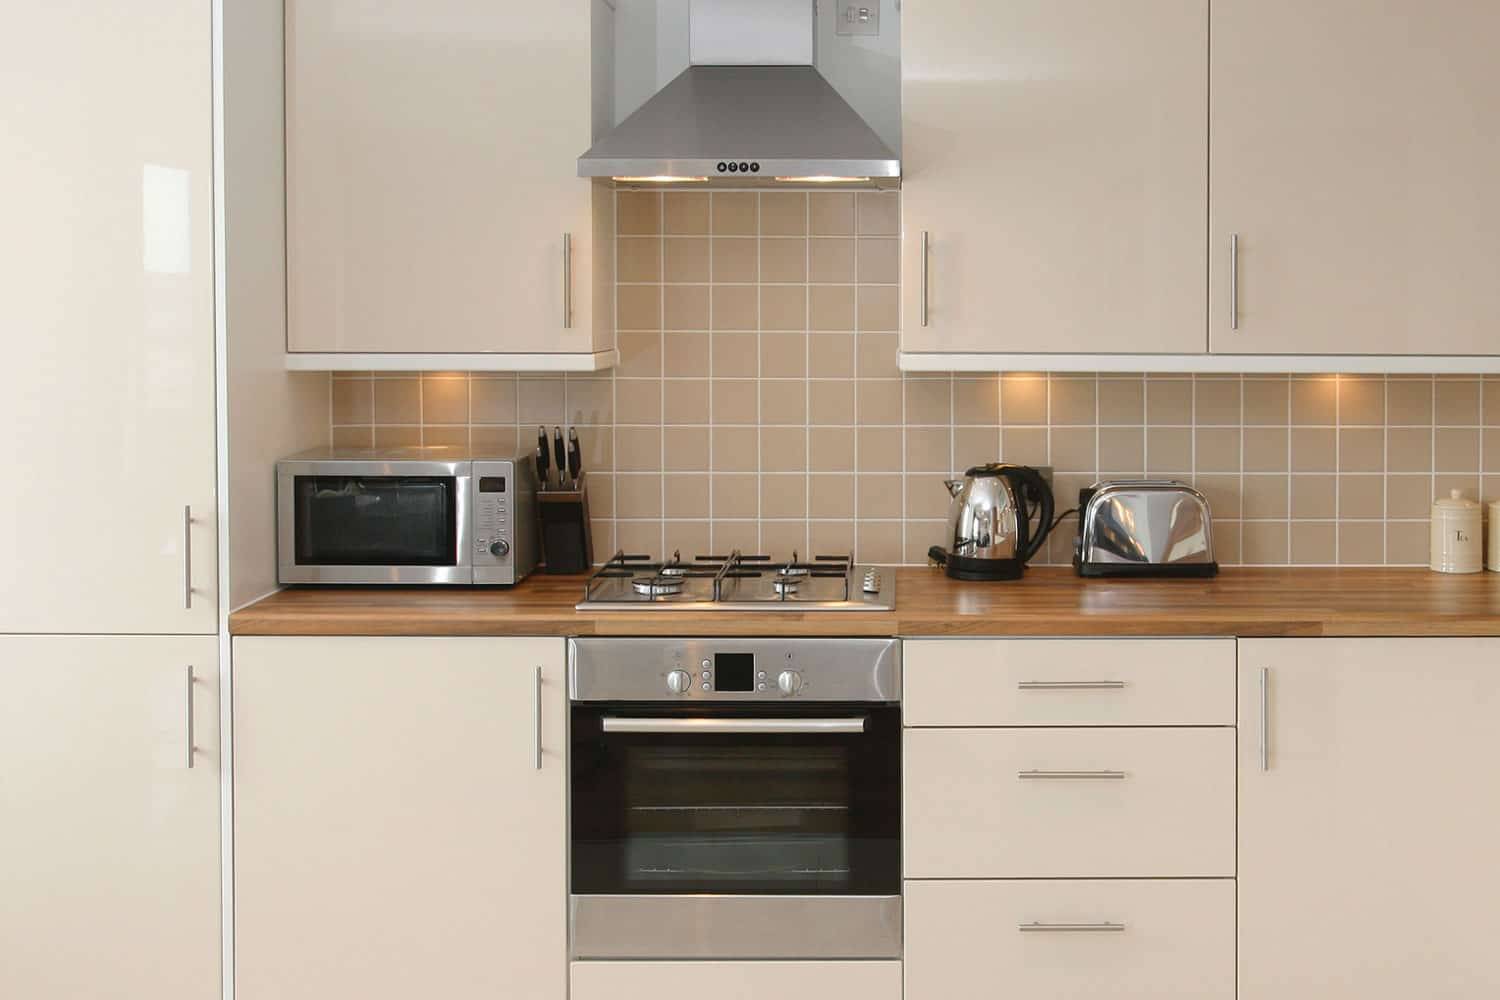 Modern kitchen interior with inegrated appliances and ceramic tiled walls and floor, How Many Inches Should There Be Between The Stove And Microwave?